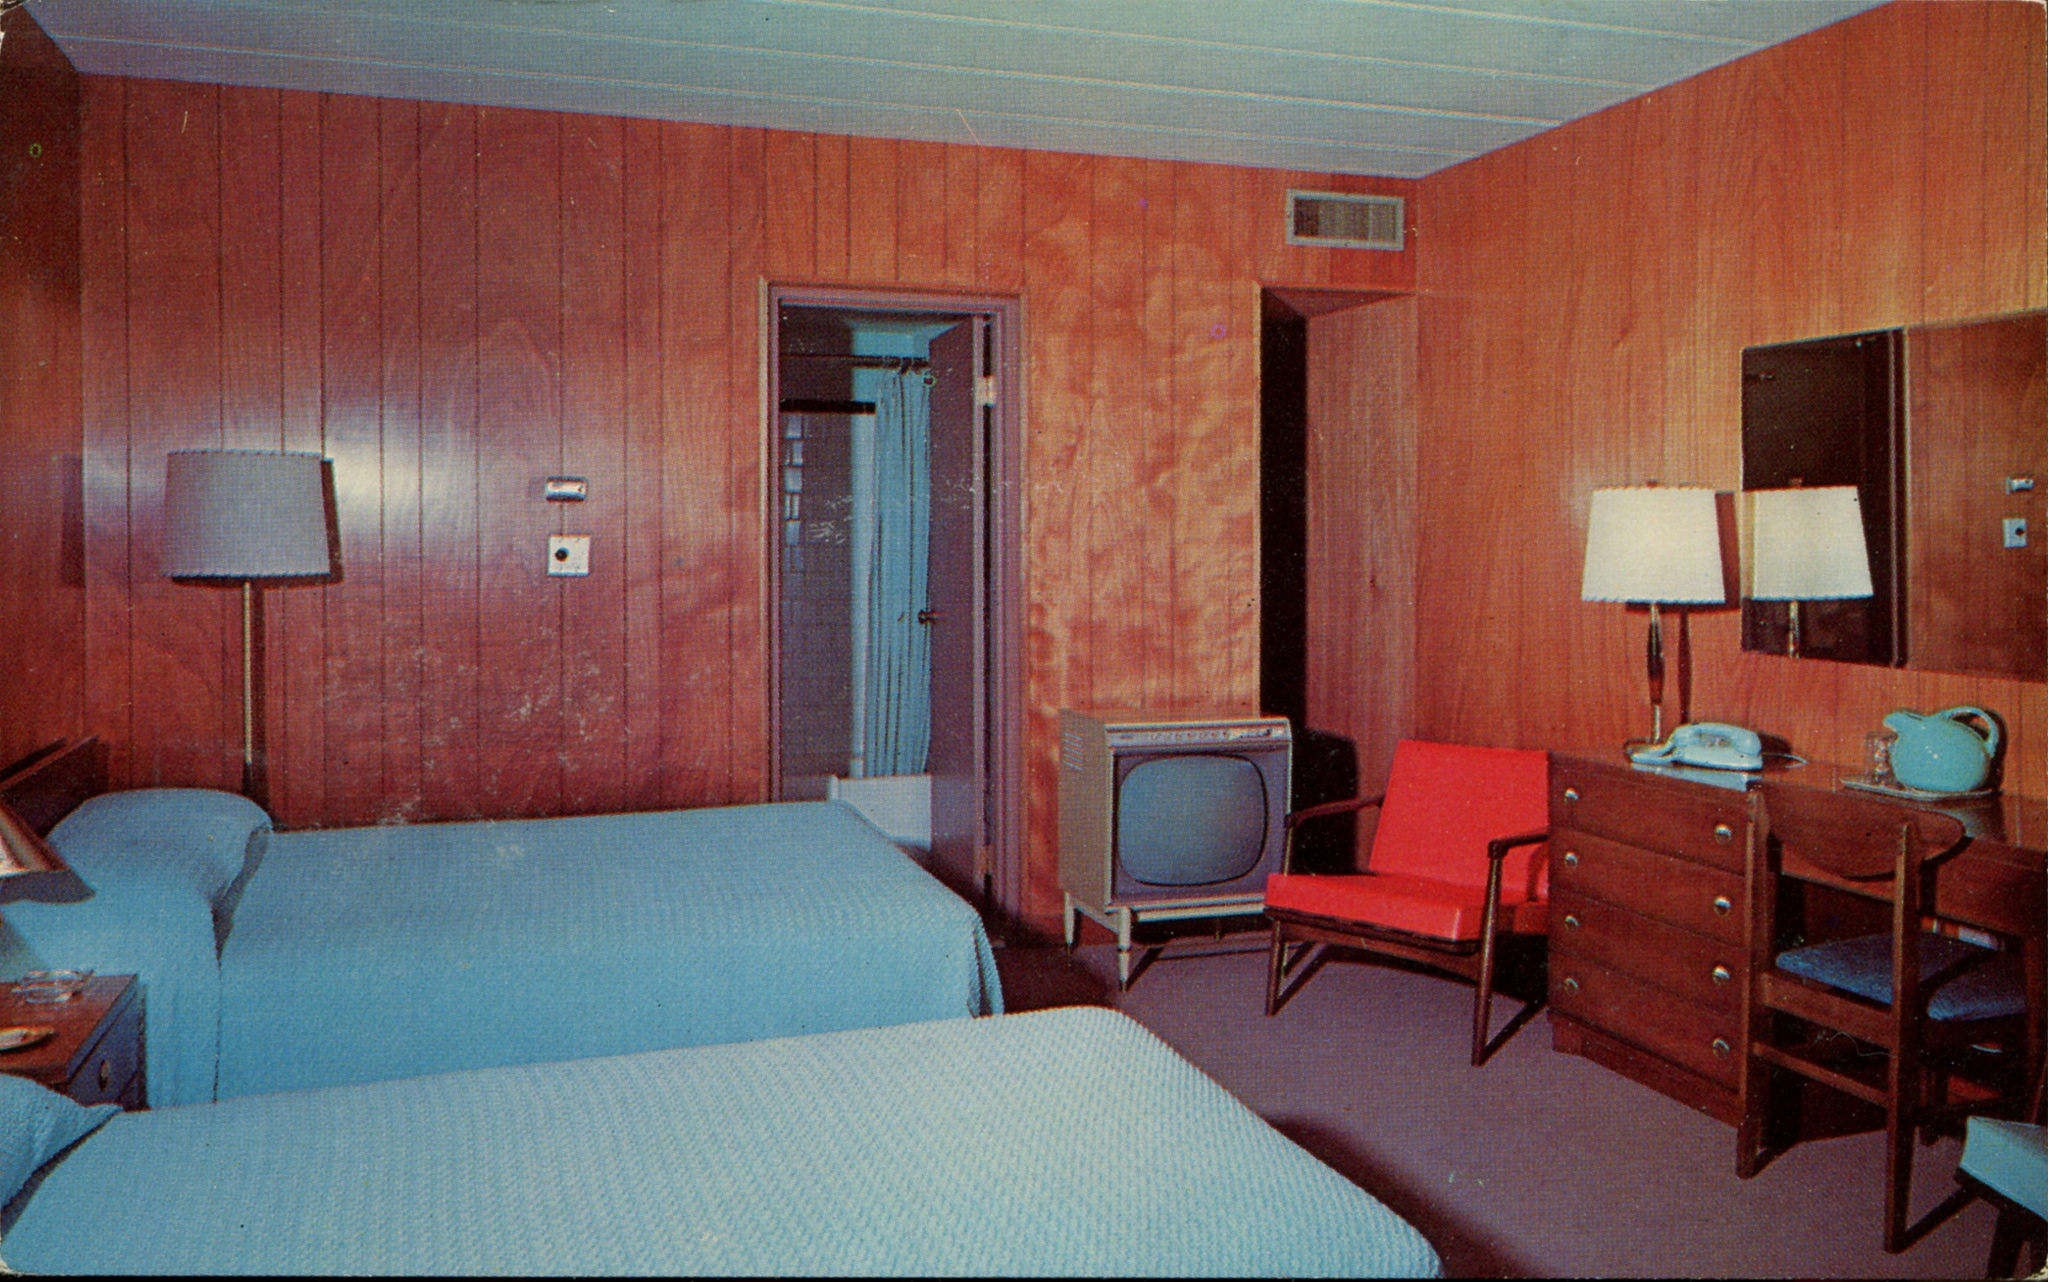 Retro Bed Postcards Of Mid-century Motel Rooms With Style - Flashbak